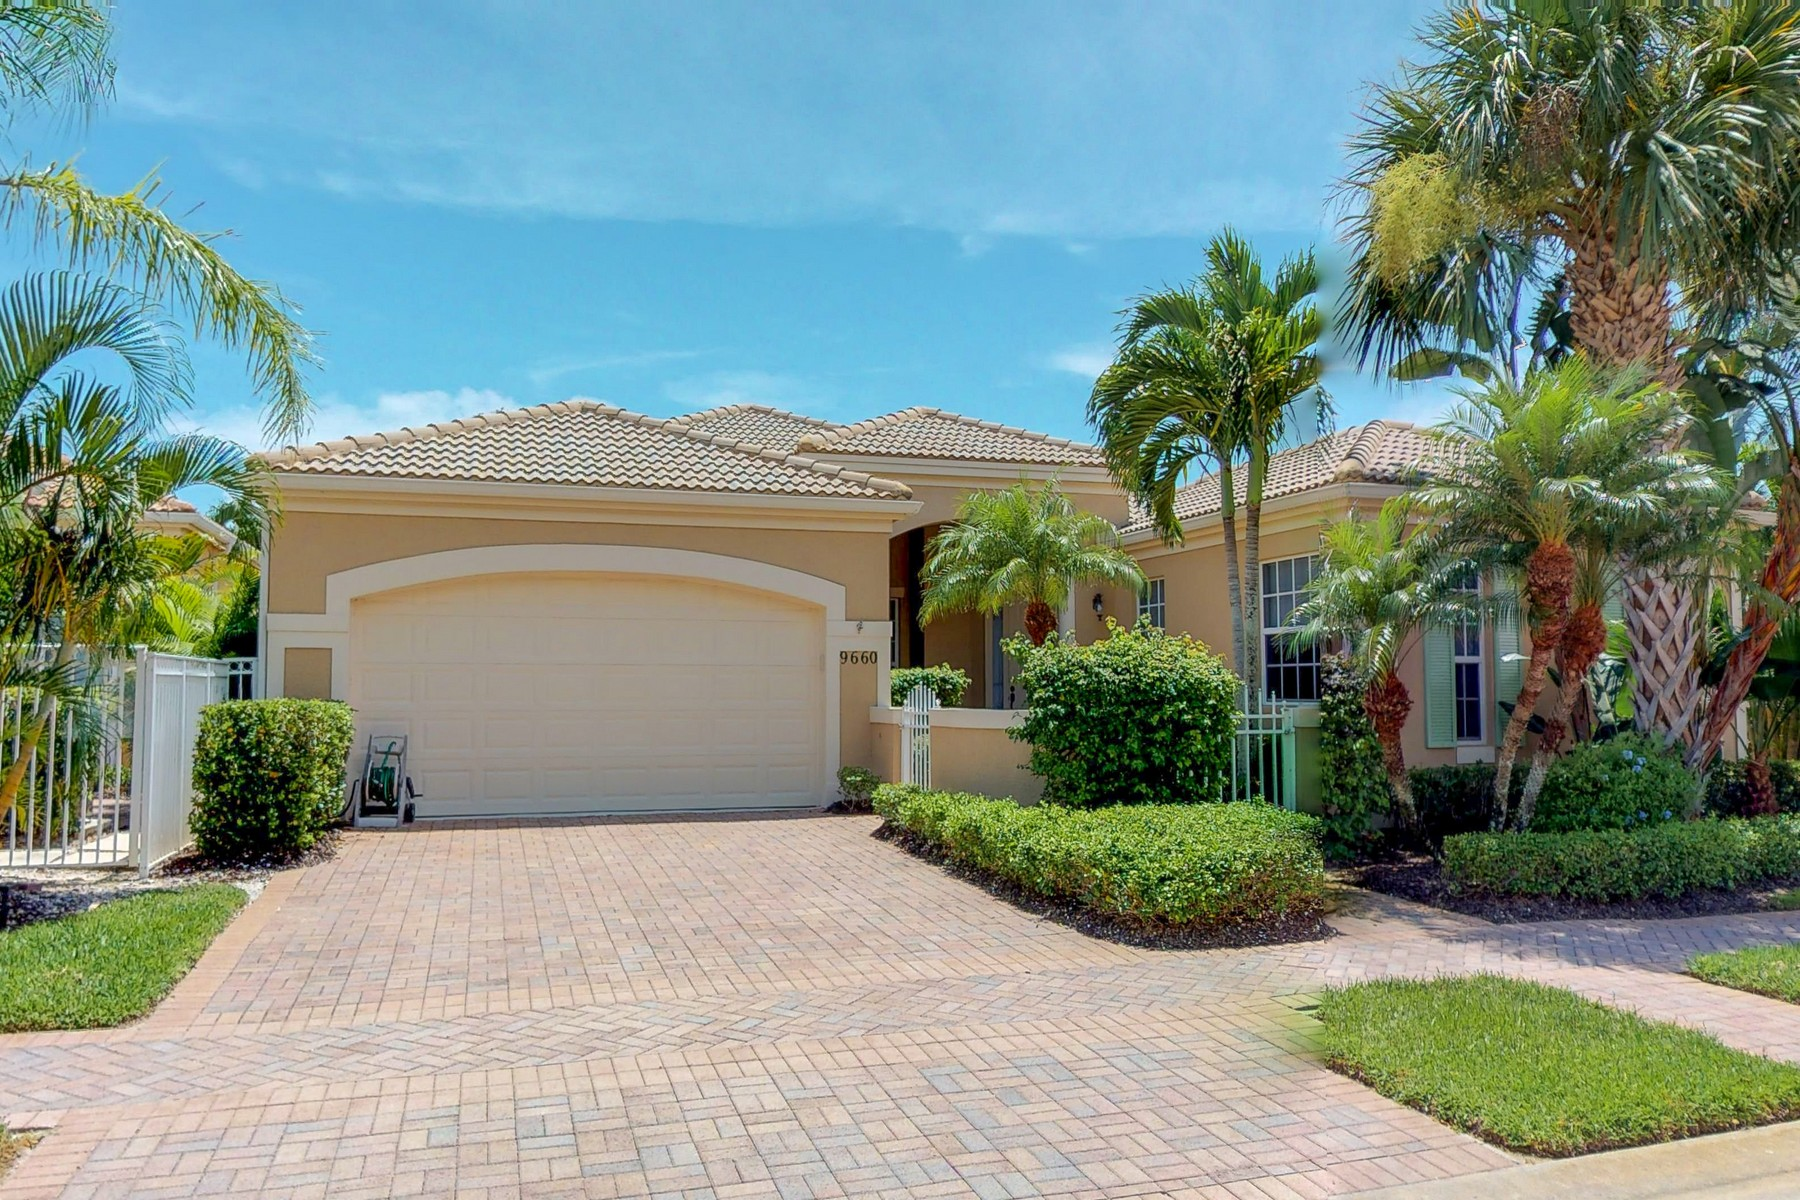 Property for Sale at WALK TO BEACH, BREATHTAKING HOME 9660 W Maiden Court Vero Beach, Florida 32963 United States